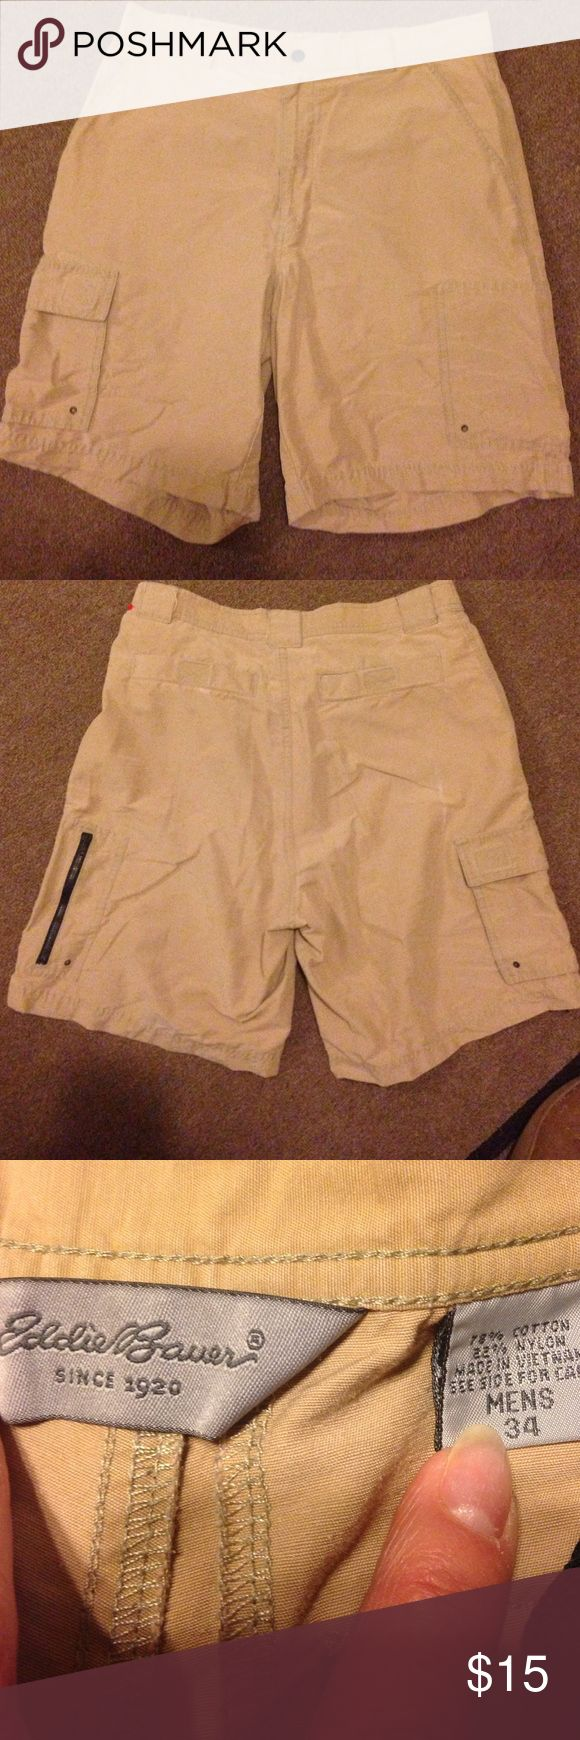 Eddie Bauer shorts. Men's Sz 34 Eddie Bauer shorts. Men's Sz 34. 78% cotton. 22% nylon. Khaki color. 2 back pockets with Velcro fasteners   2 front side pockets. 1 small pocket with Velcro fastener.   Pocket on the side of each leg. One has zipper closure   One has flap with Velcro faster. Zipper fly with snap at waistband.  Nice shorts! Eddie Bauer Shorts